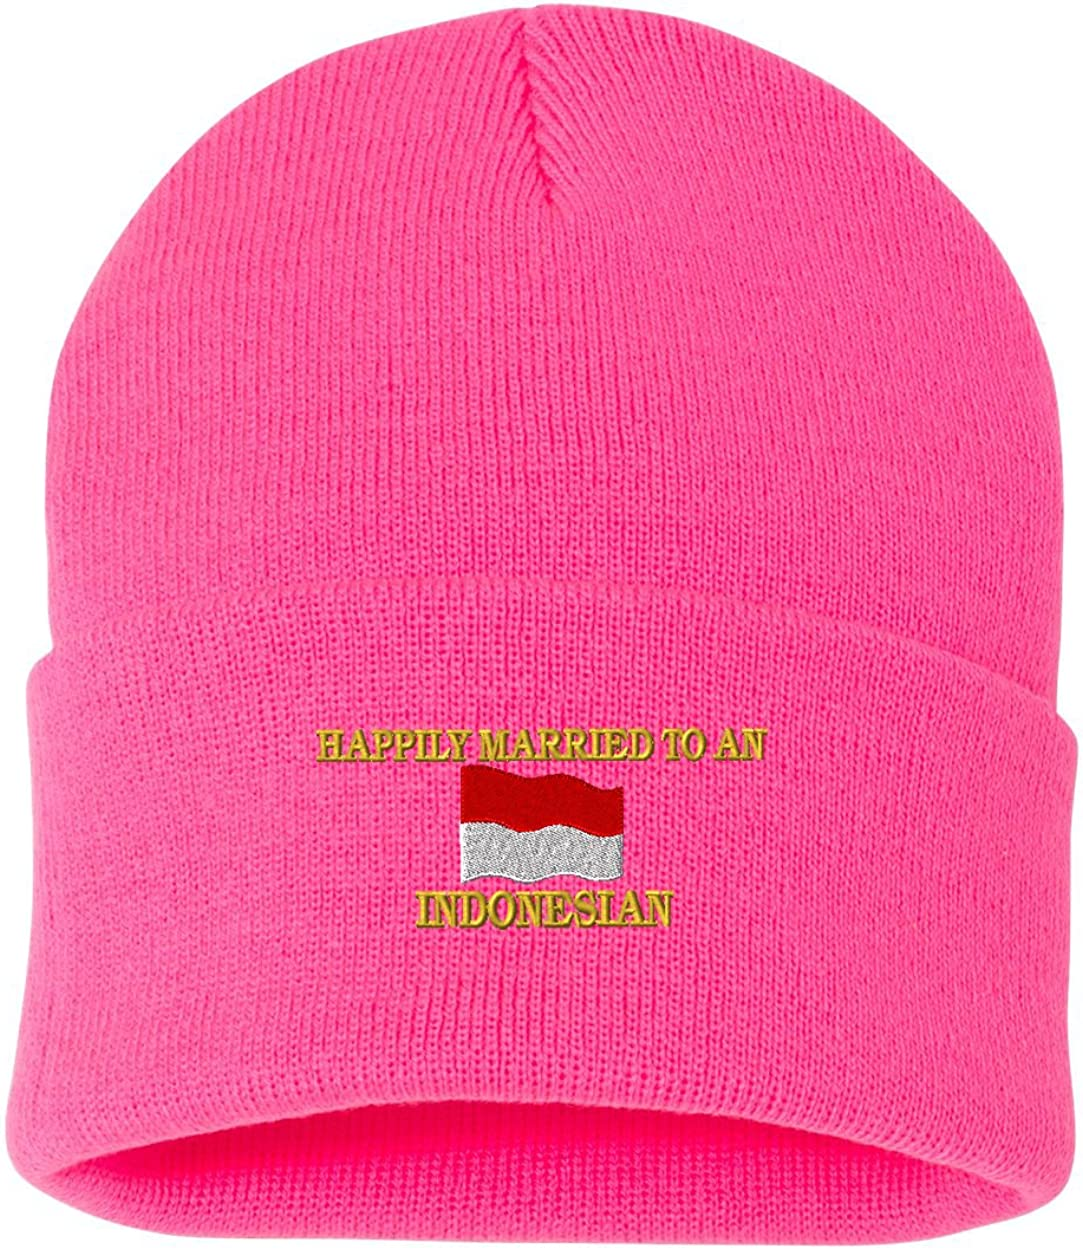 HAPPILY MARRIED TO AN INDONESIAN Custom Personalized Embroidery Embroidered Beanie